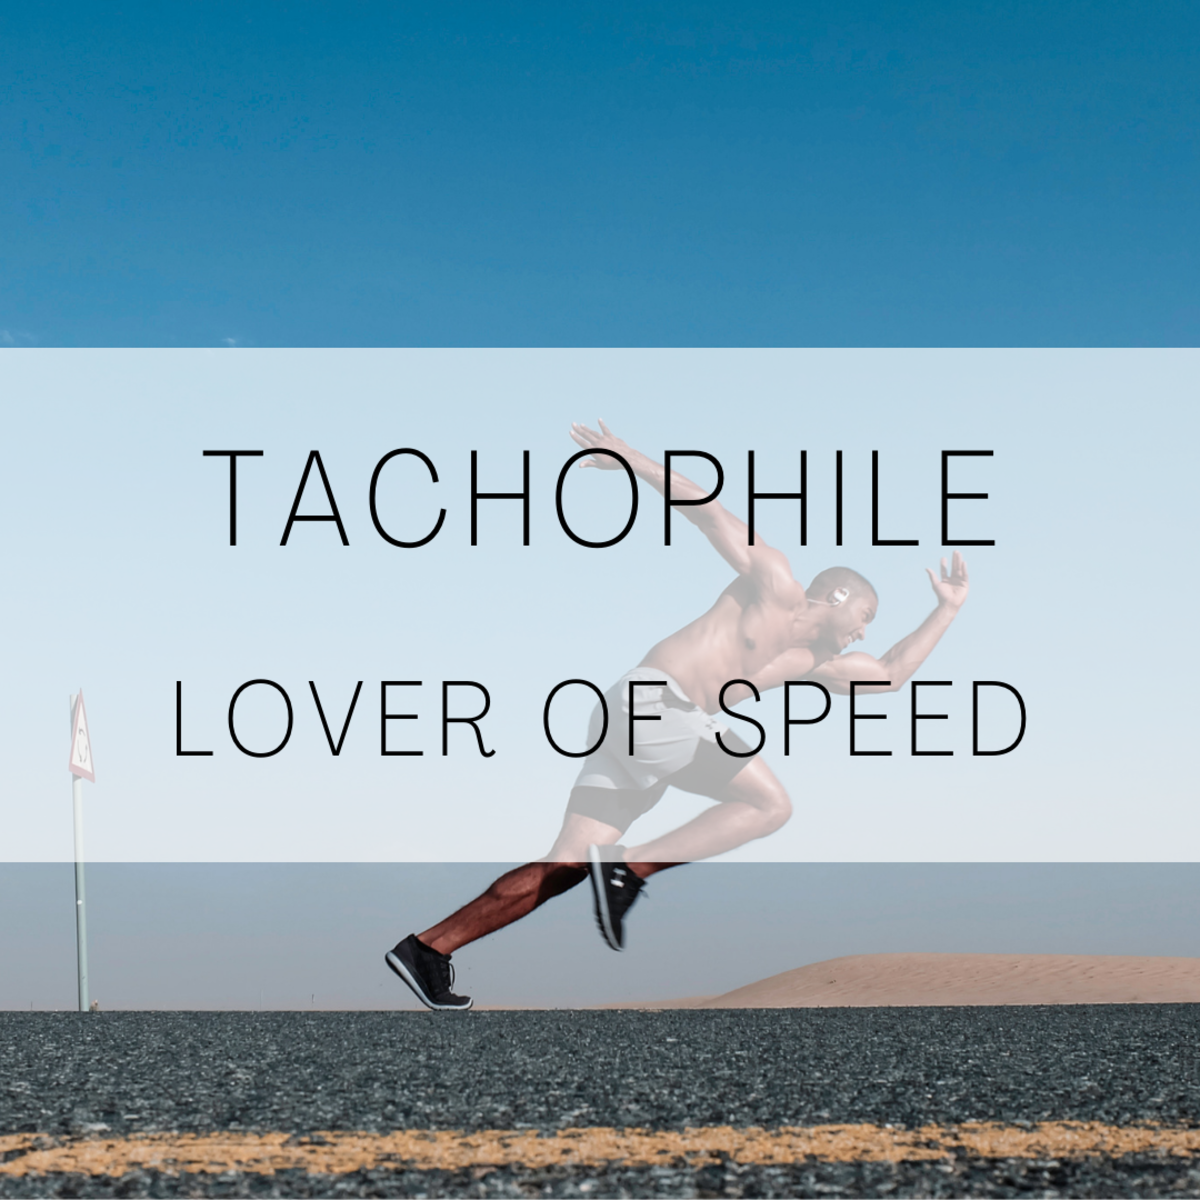 Tachopile, a lover of speed